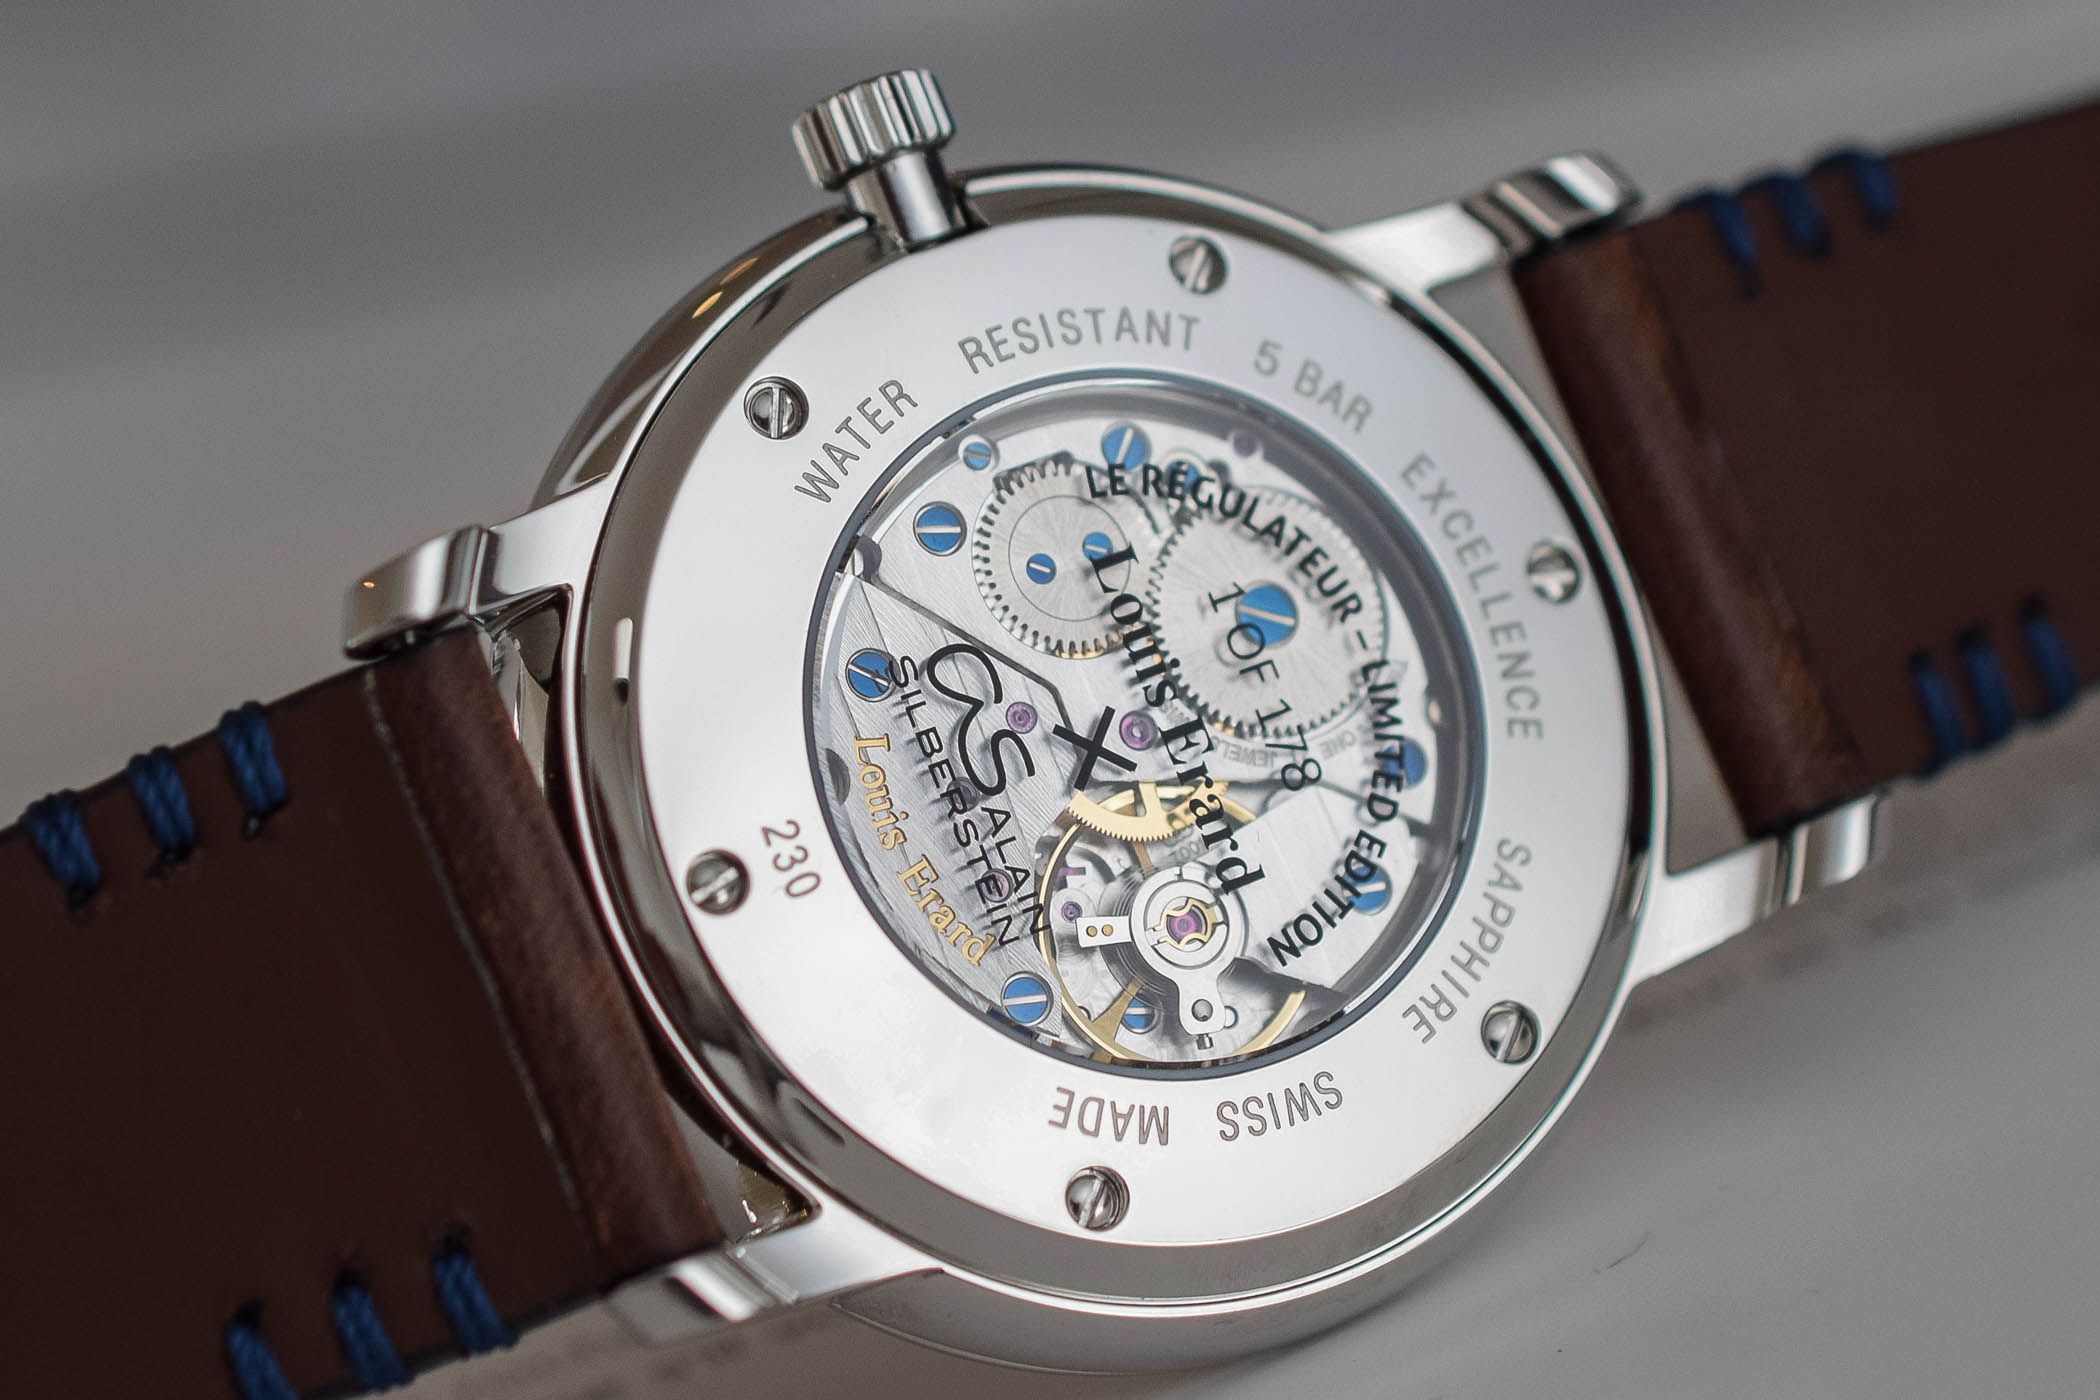 Louis Erard x Alain Silberstein Excellence Regulateur Limited Edition